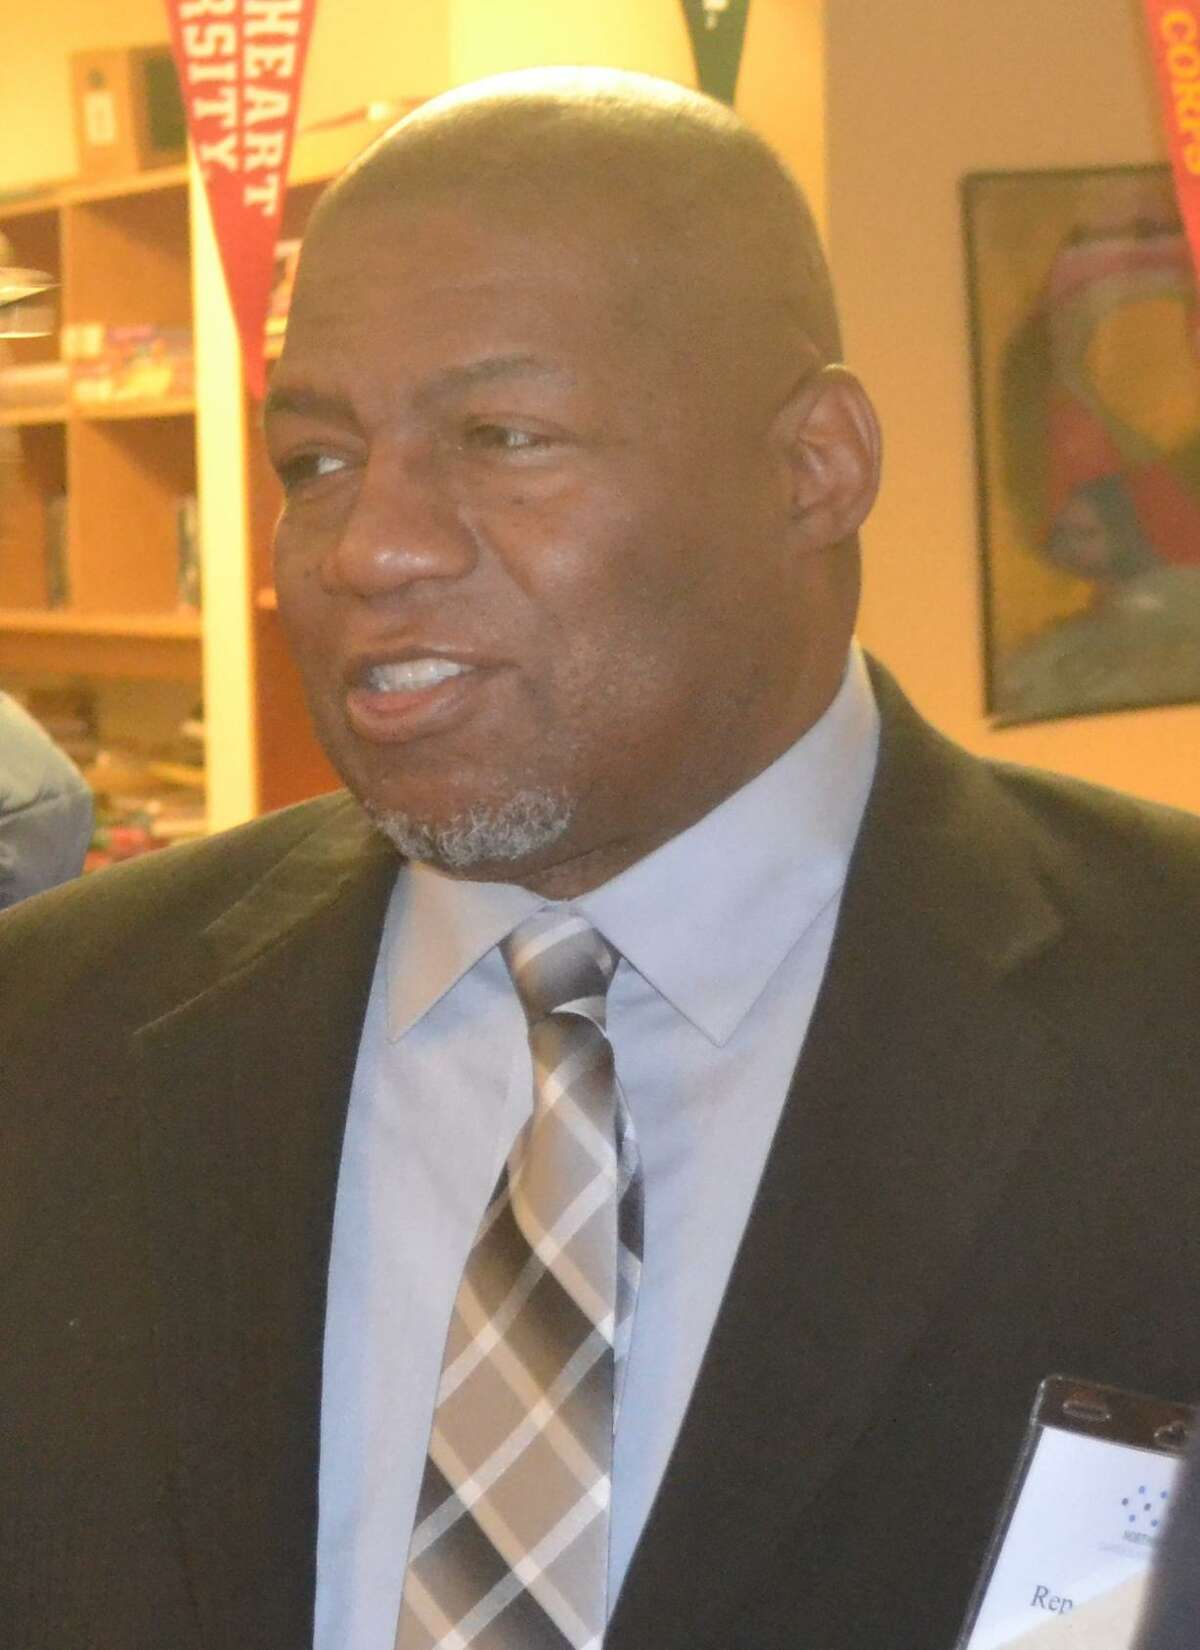 Rep. Rodney Pratt has proposed an ordinance that would ban 3-D weapons and so-called ghost guns.